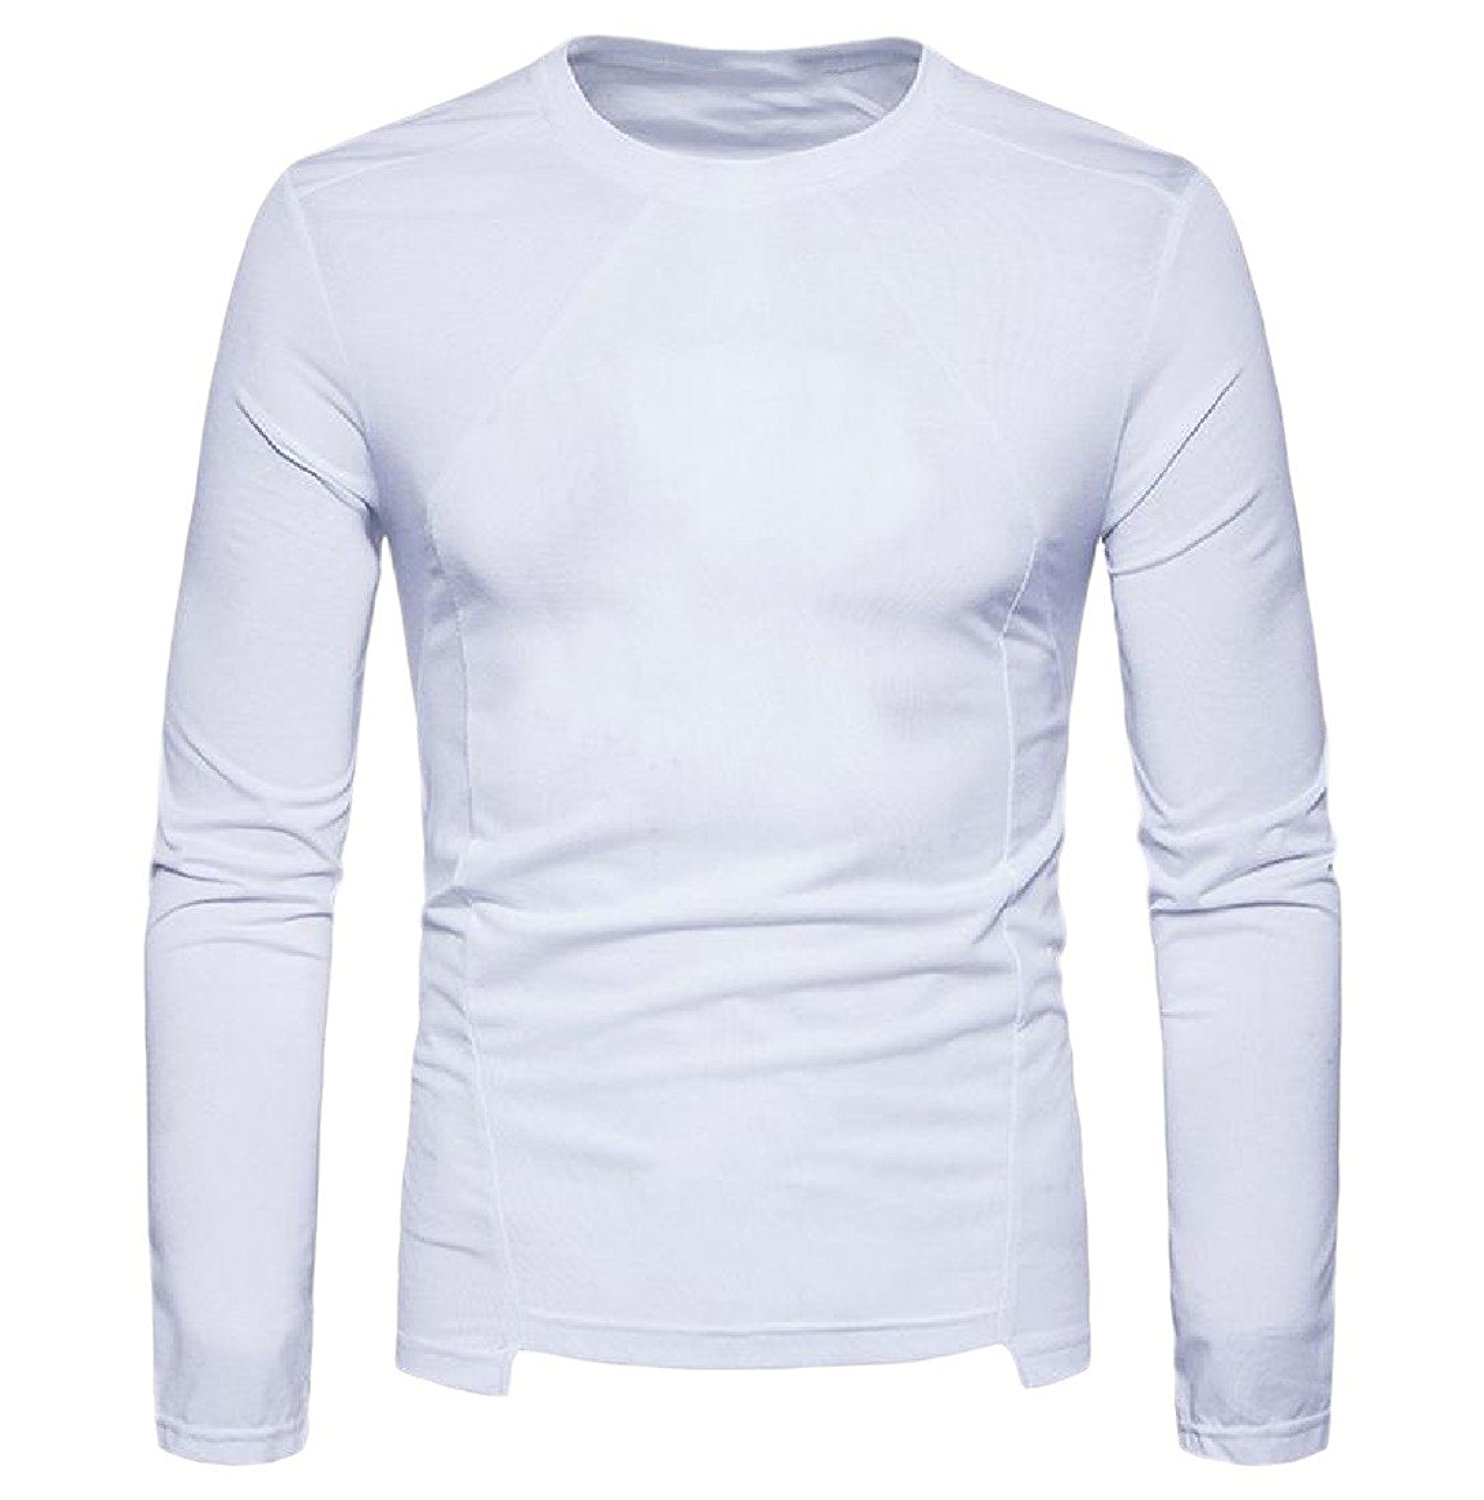 Andopa Mens Soft Crew Neck Pure Colour Long-Sleeve Knit Pullovers Sweater